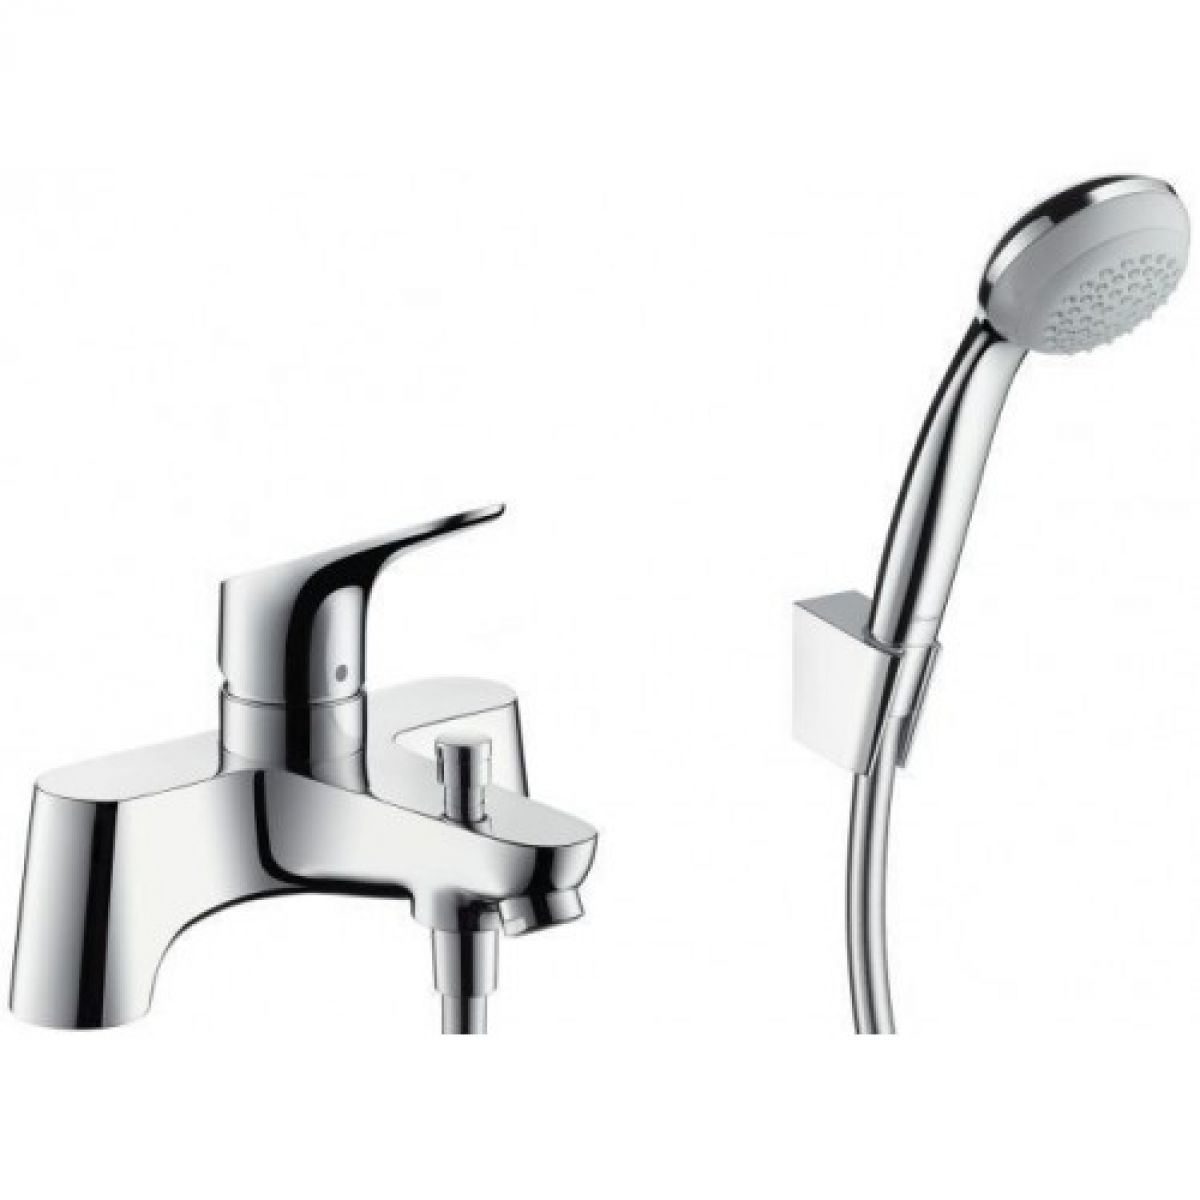 Fine Grohe Bath And Shower Mixer Photo - Sink Faucet Ideas - nokton.info